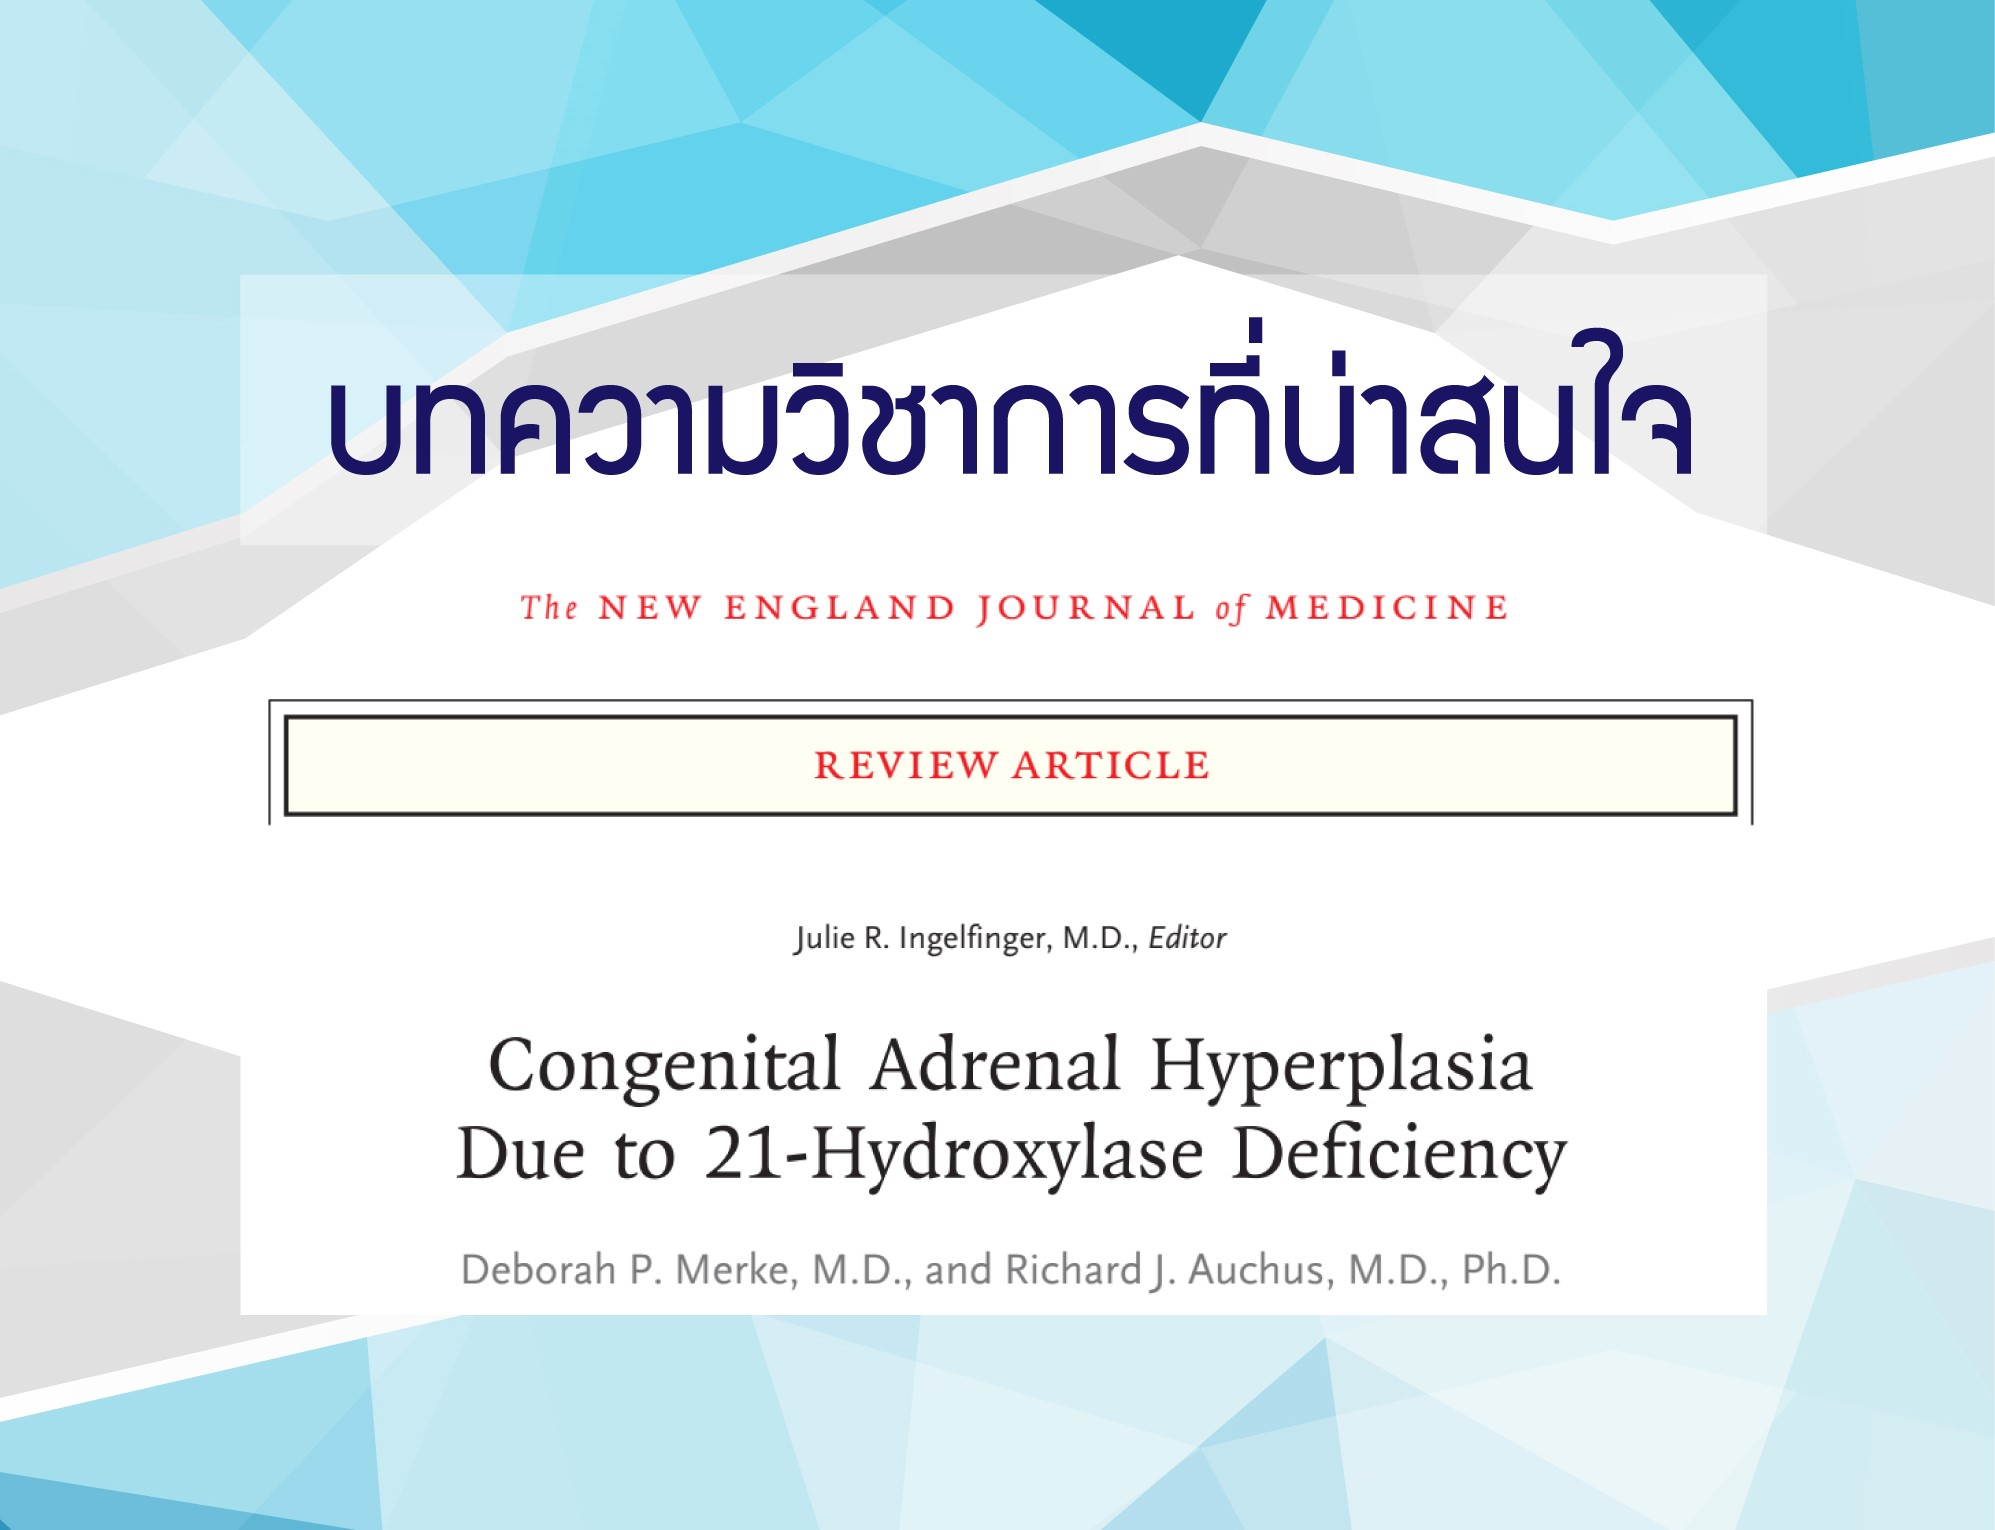 Congenital adrenal hyperplasia due to 21-hydroxylase deficiency